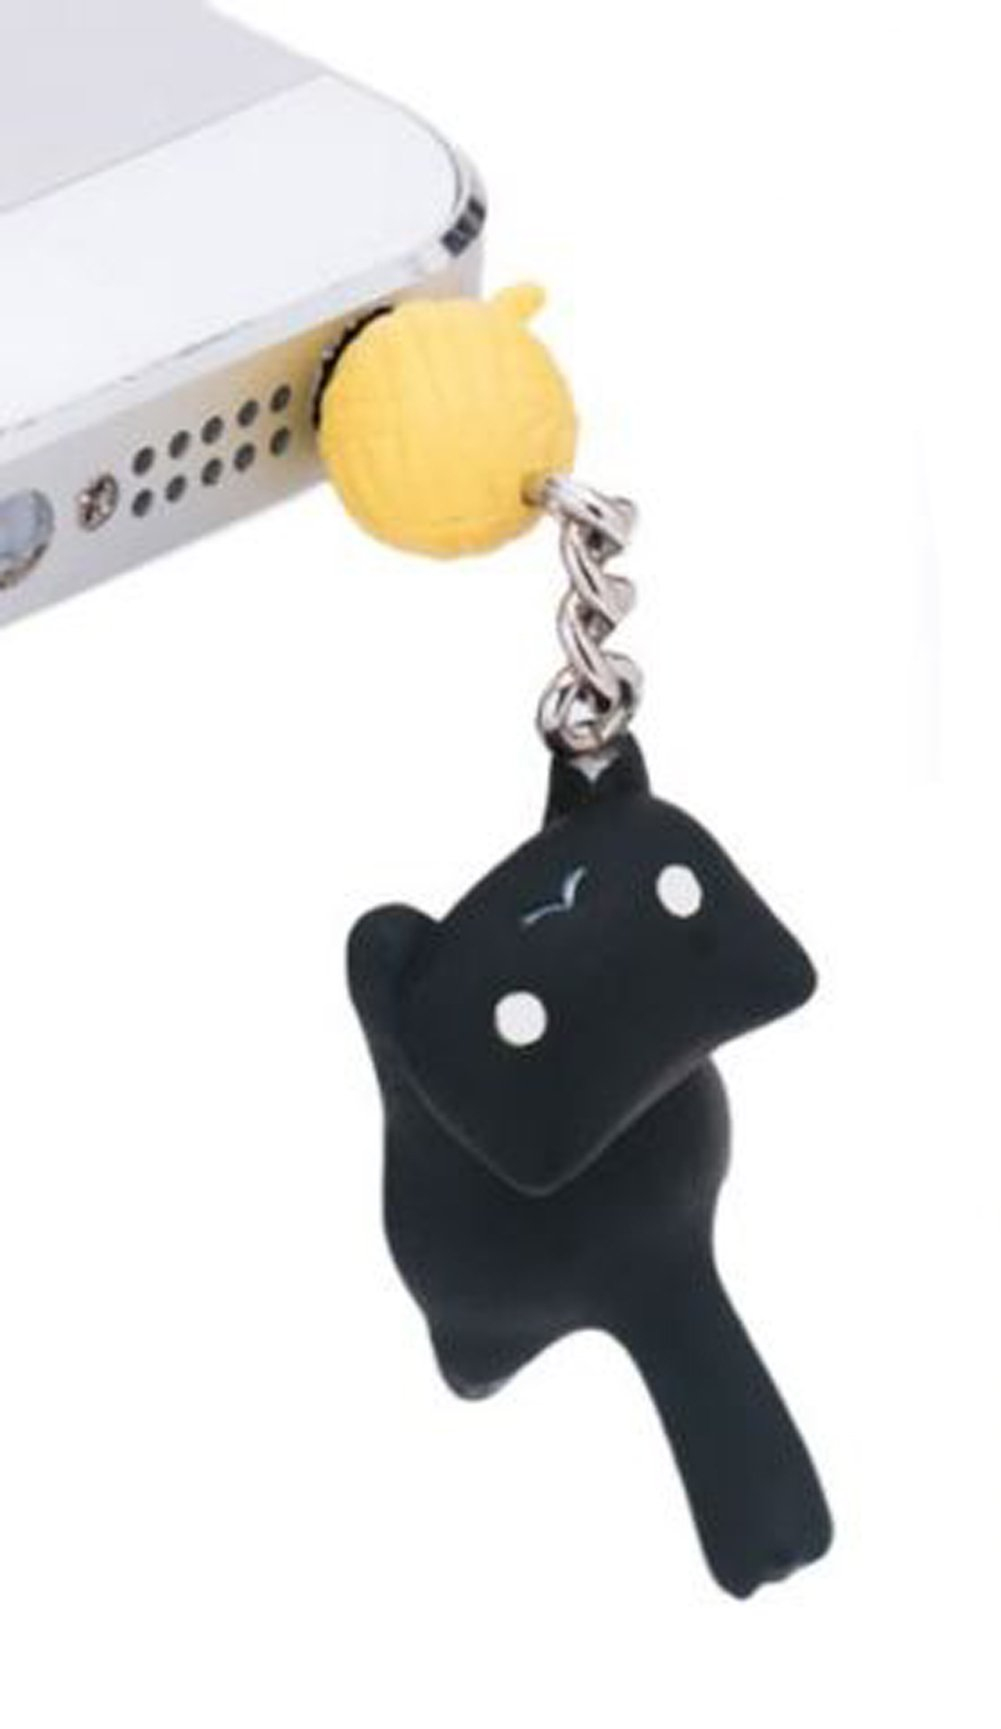 1Pc Cute Cat and Ball 3.5mm Earphone Ear Cap Anti Dust Plug Cover For Cell Phone (Black)